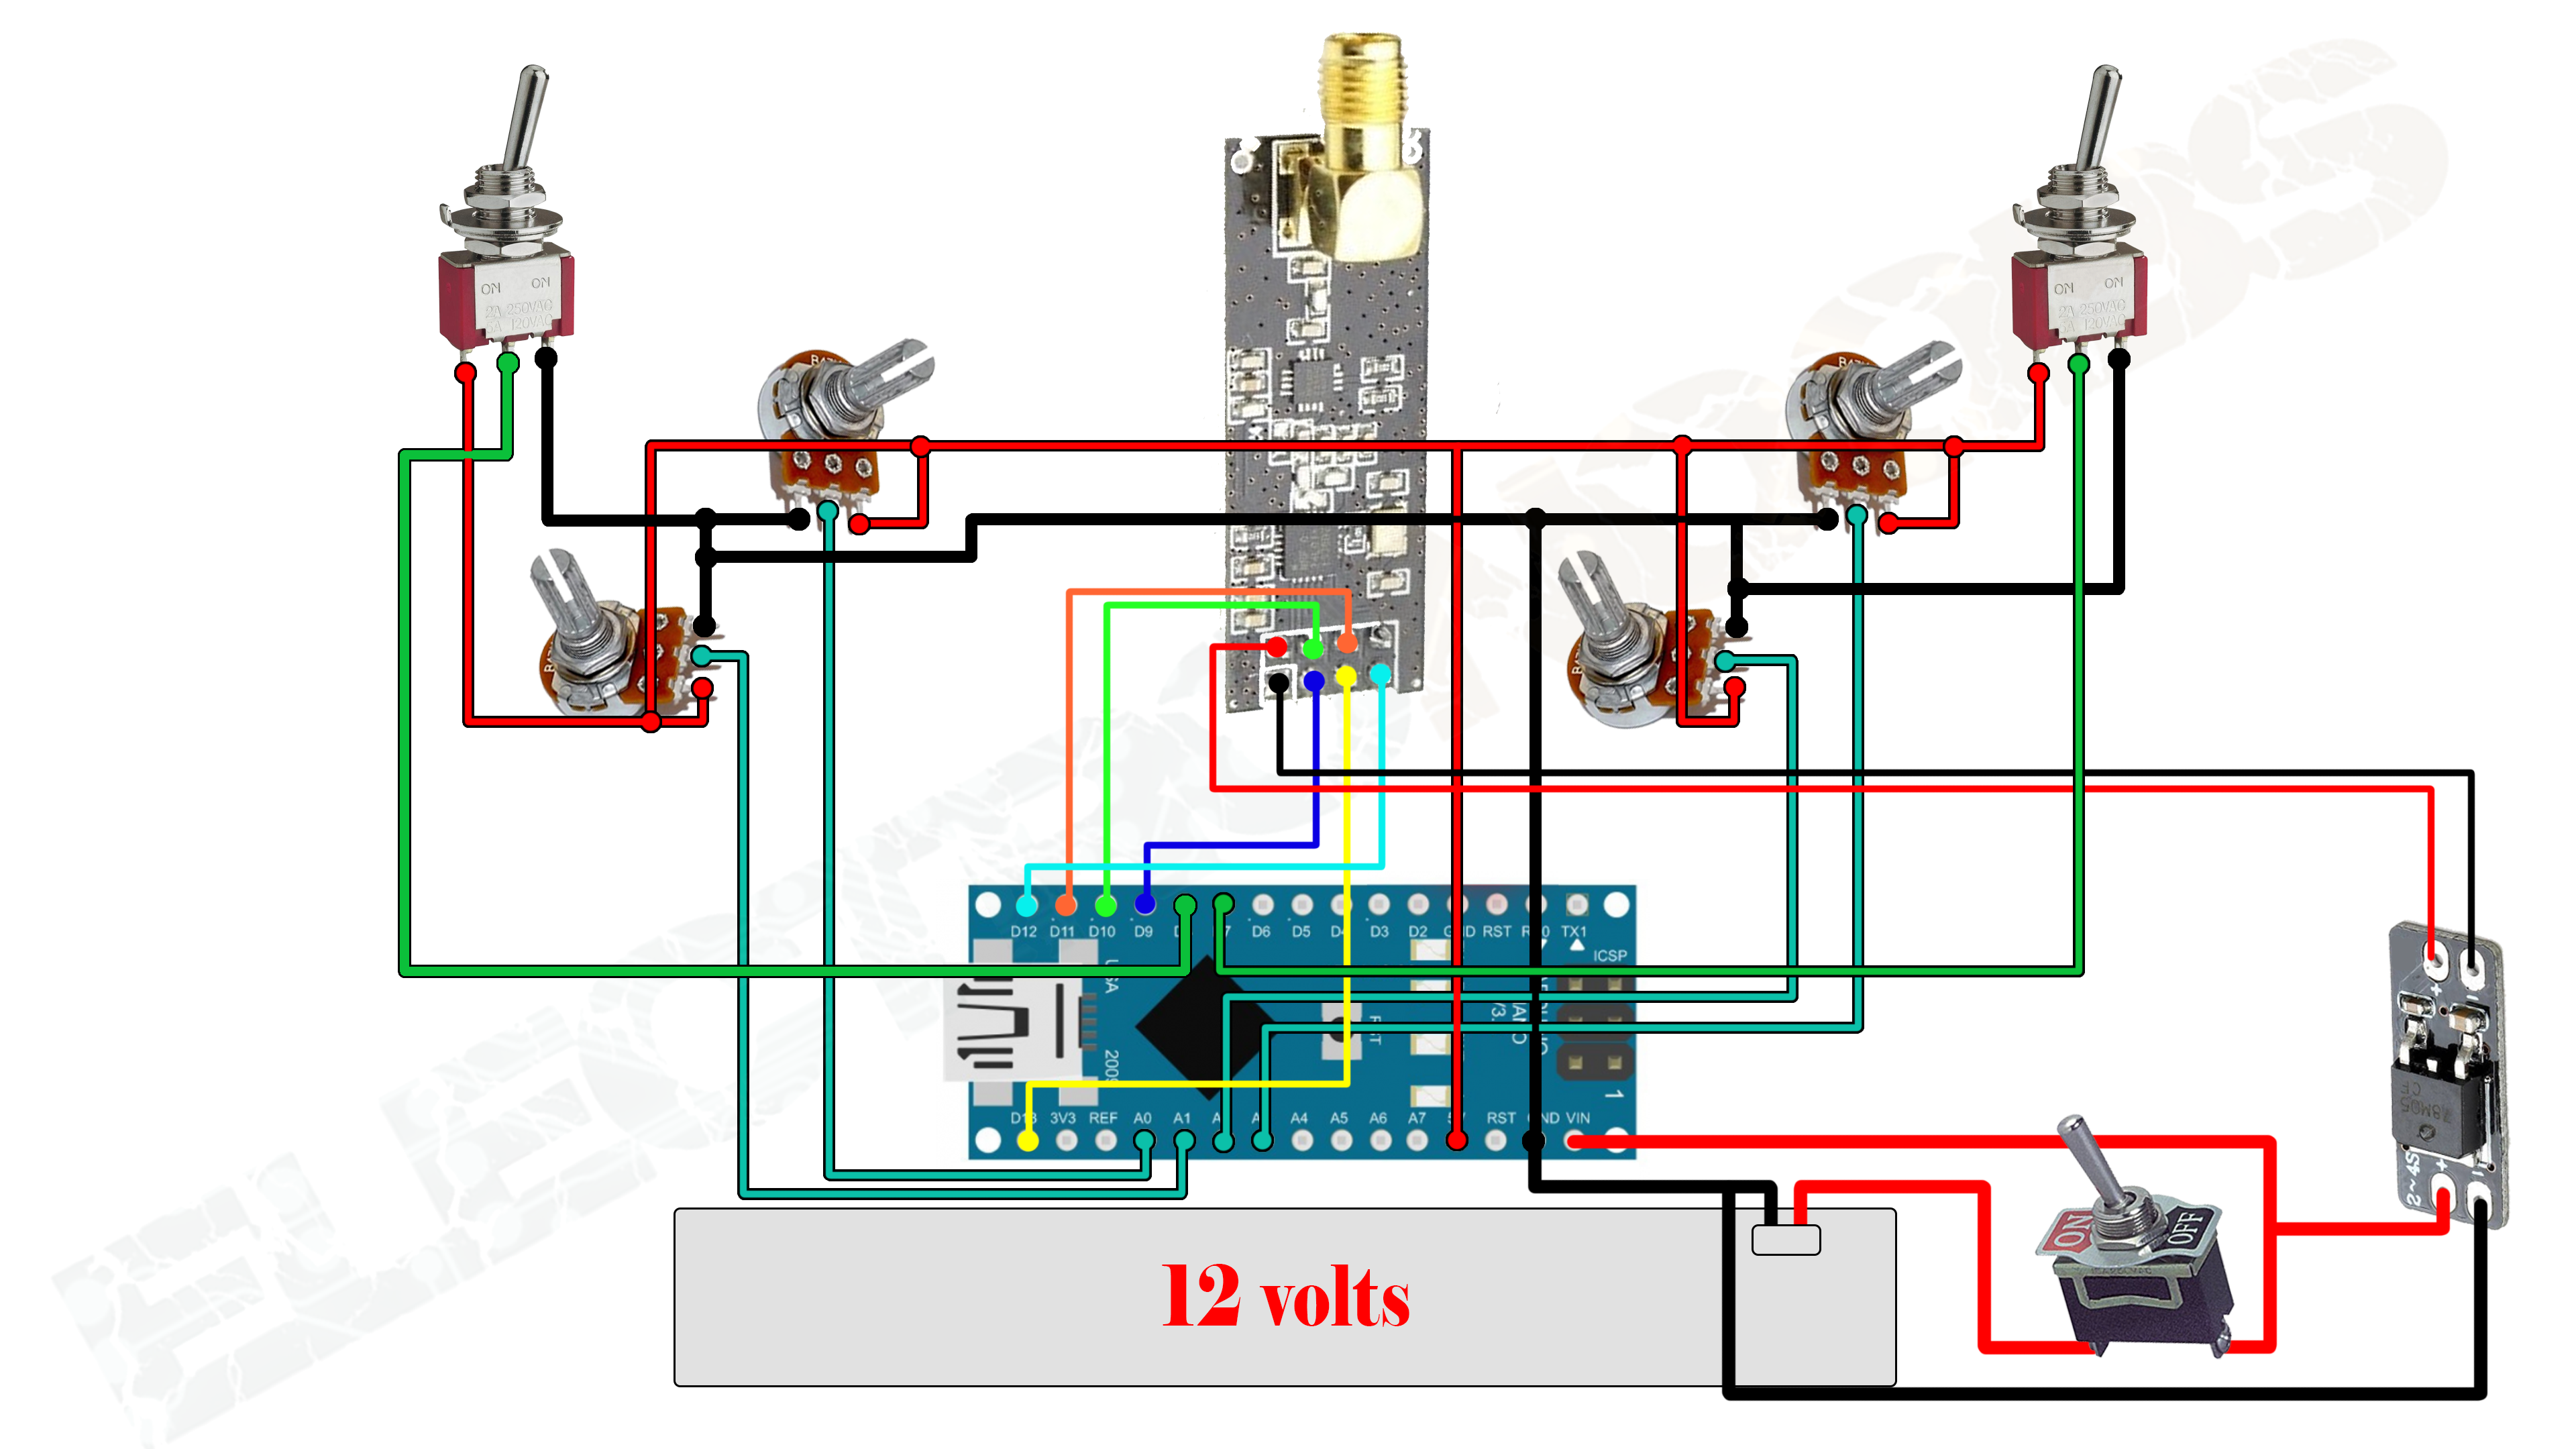 switch_schematic Quadcopter Wiring Diagram Manual on camera wiring, pid controller block, esc voltage, software flow, motor wiring,